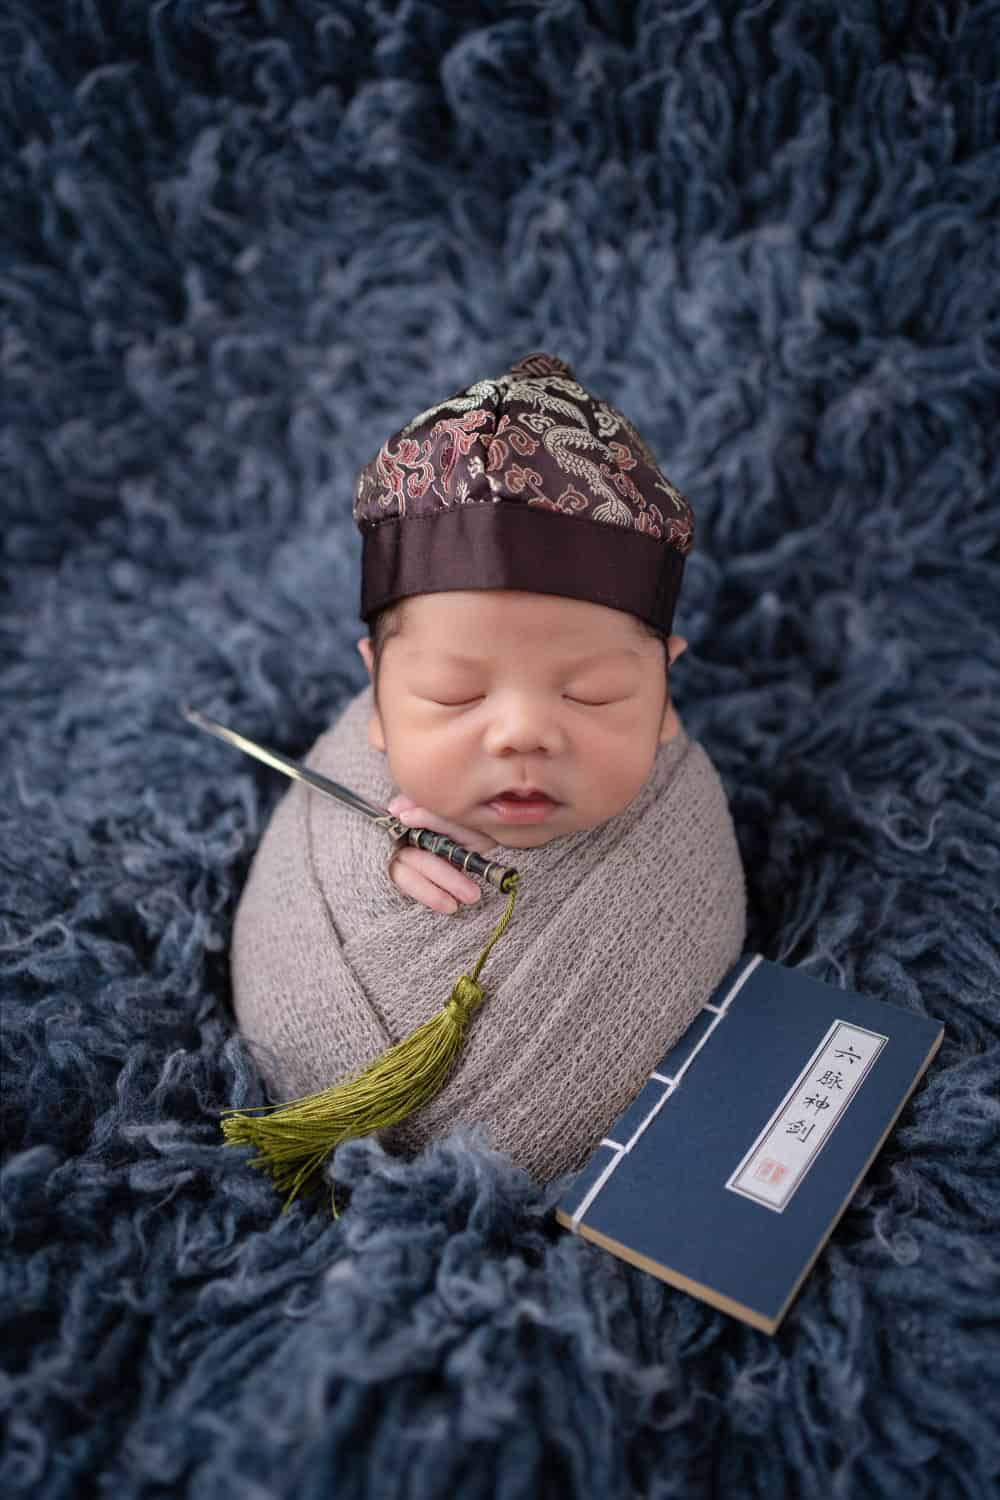 baby photoshoot singapore newborn wrapped in a comfortable blanket is wearing a traditional hat and has a chinese book.